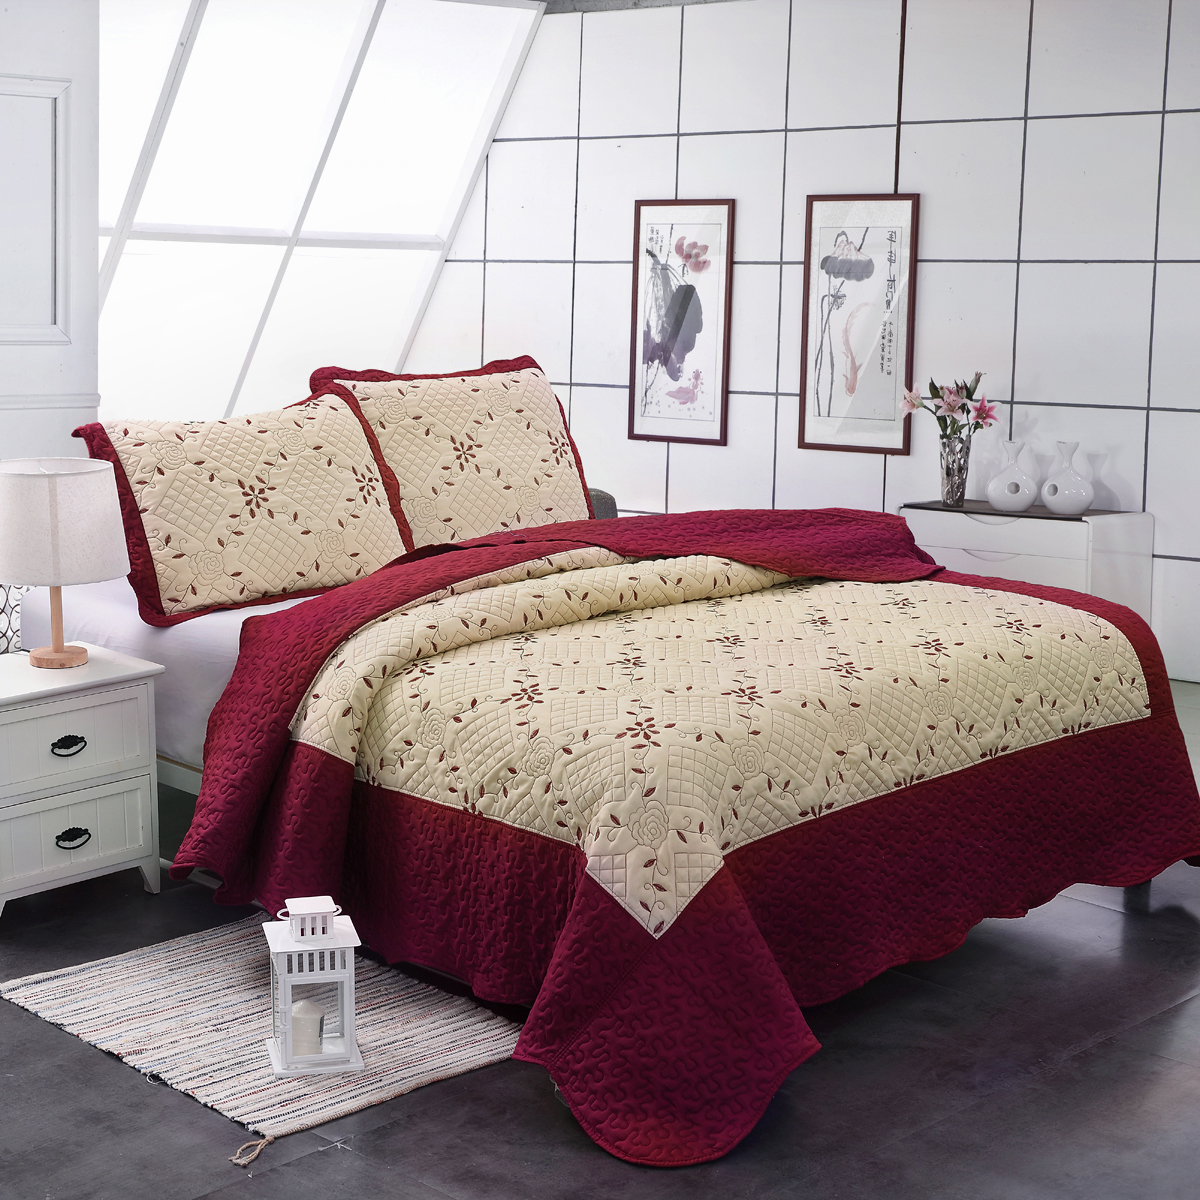 Luxury 3 Pieces Quilt Set King Size Soft Brushed